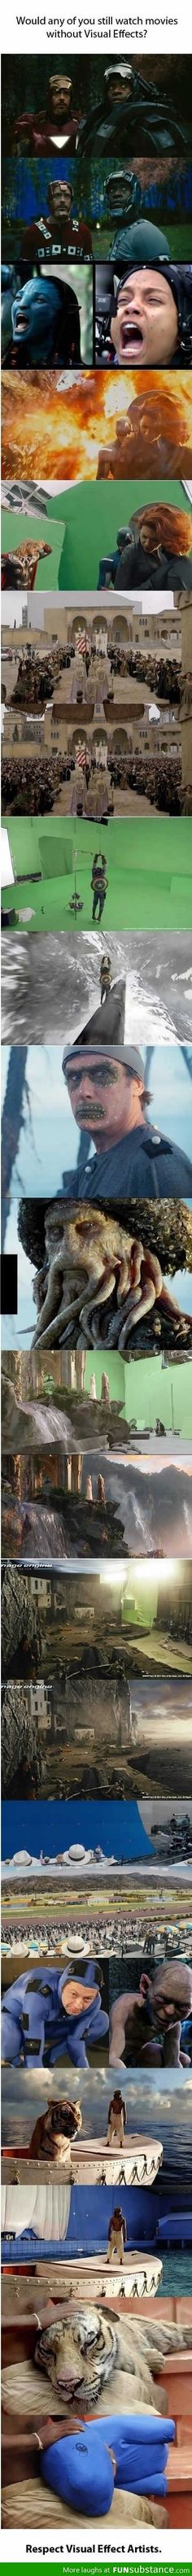 Epic movie visual effects